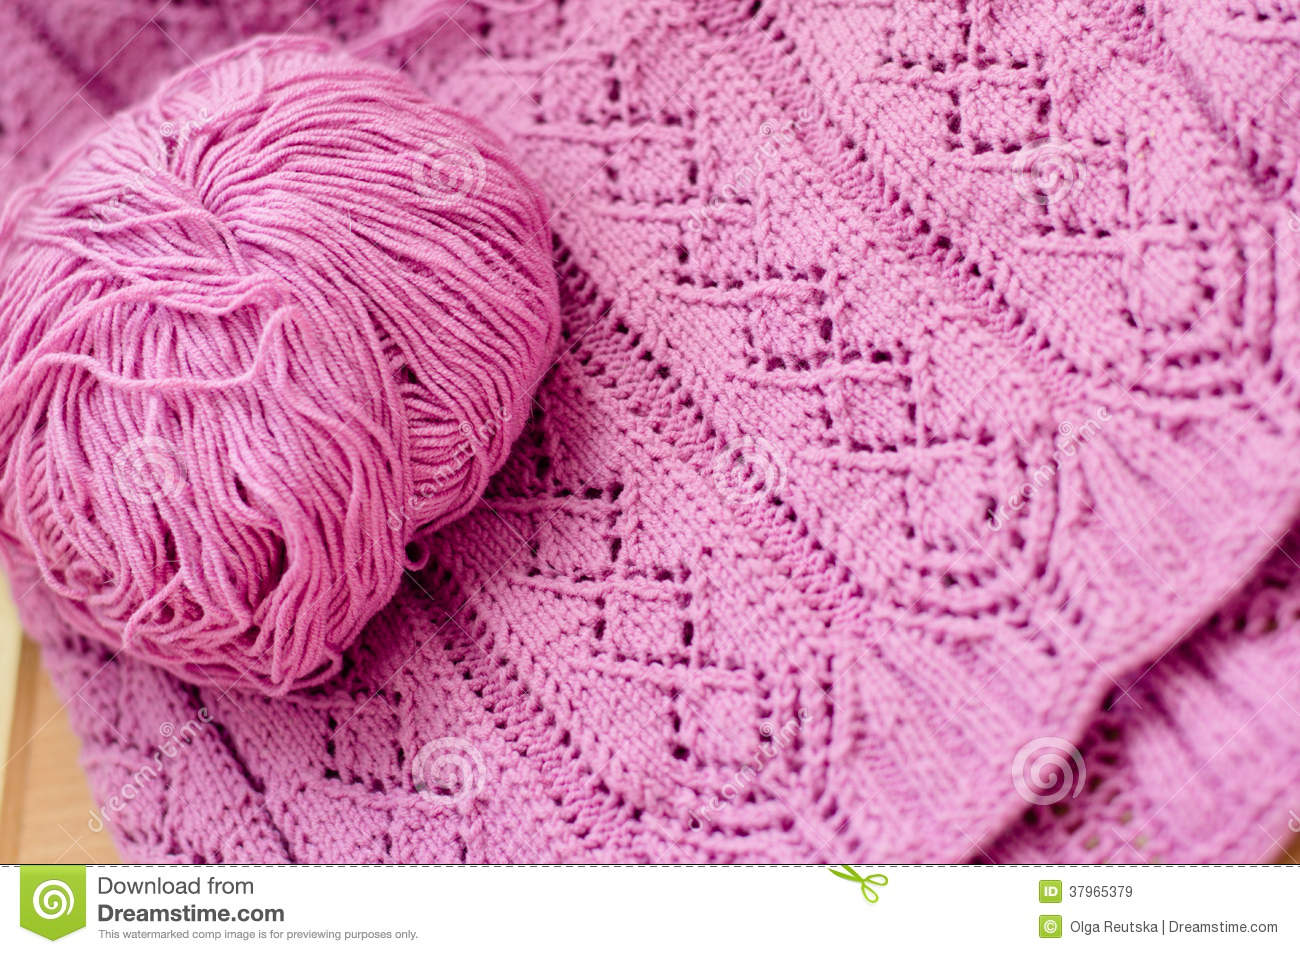 8e31f2ad9f1 closeup on pink detail of woven handicraft knit woolen design texture and  clew. Fabric pink background